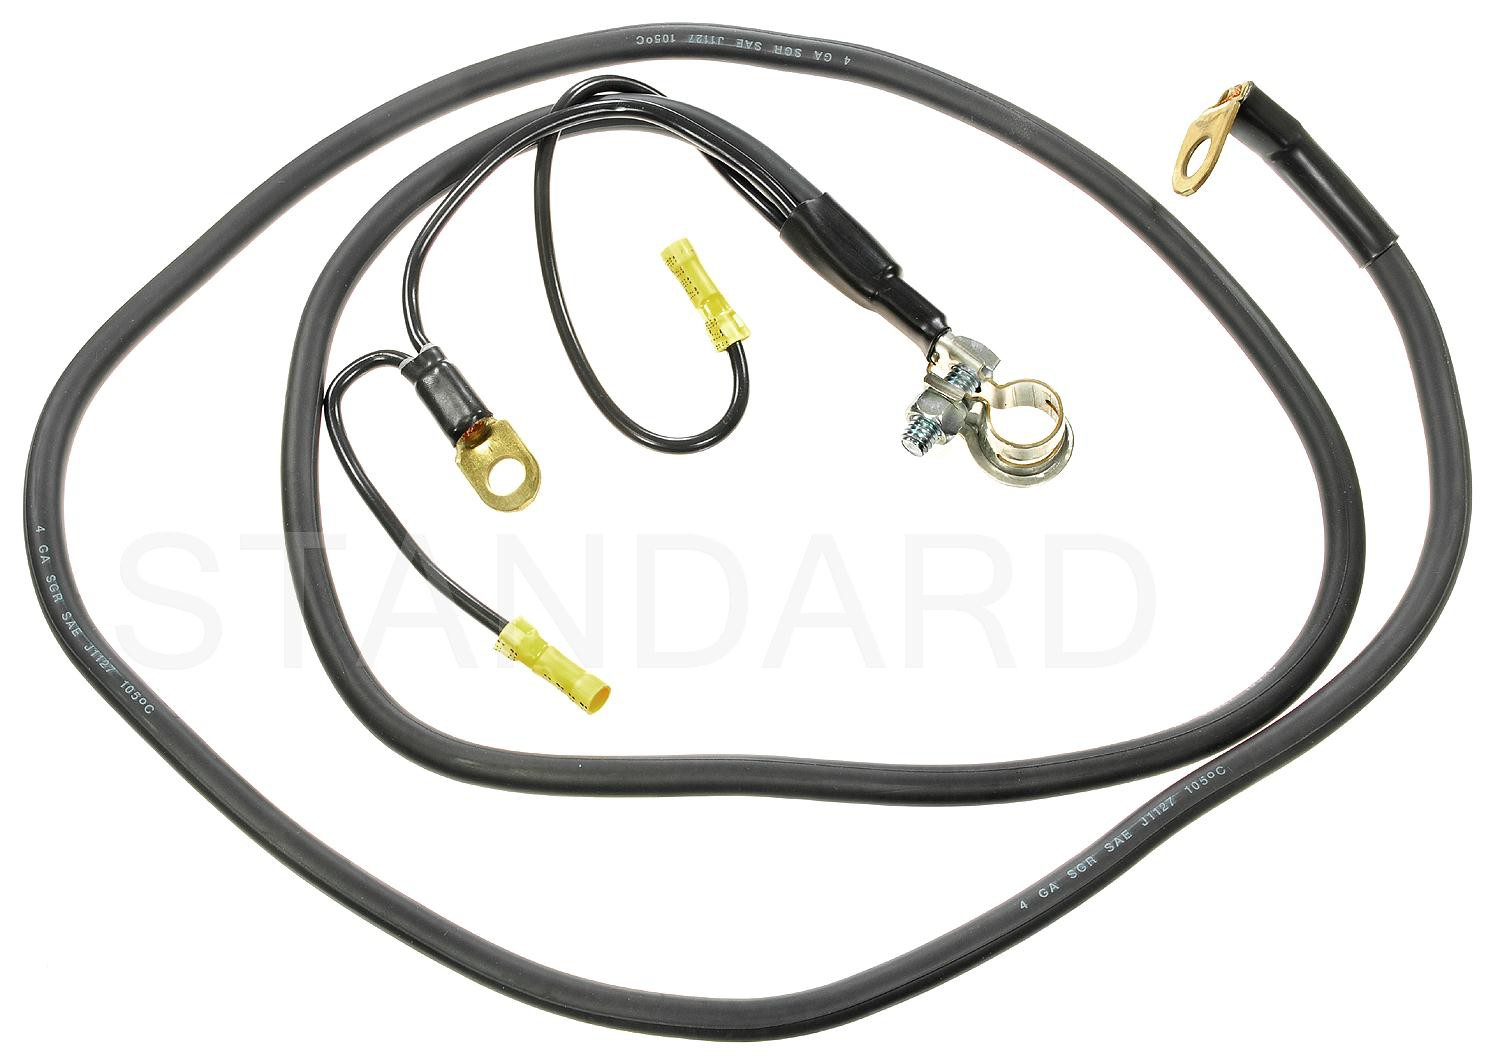 Battery Cable Standard A62 4tc Fits 96 98 Ford Mustang 4